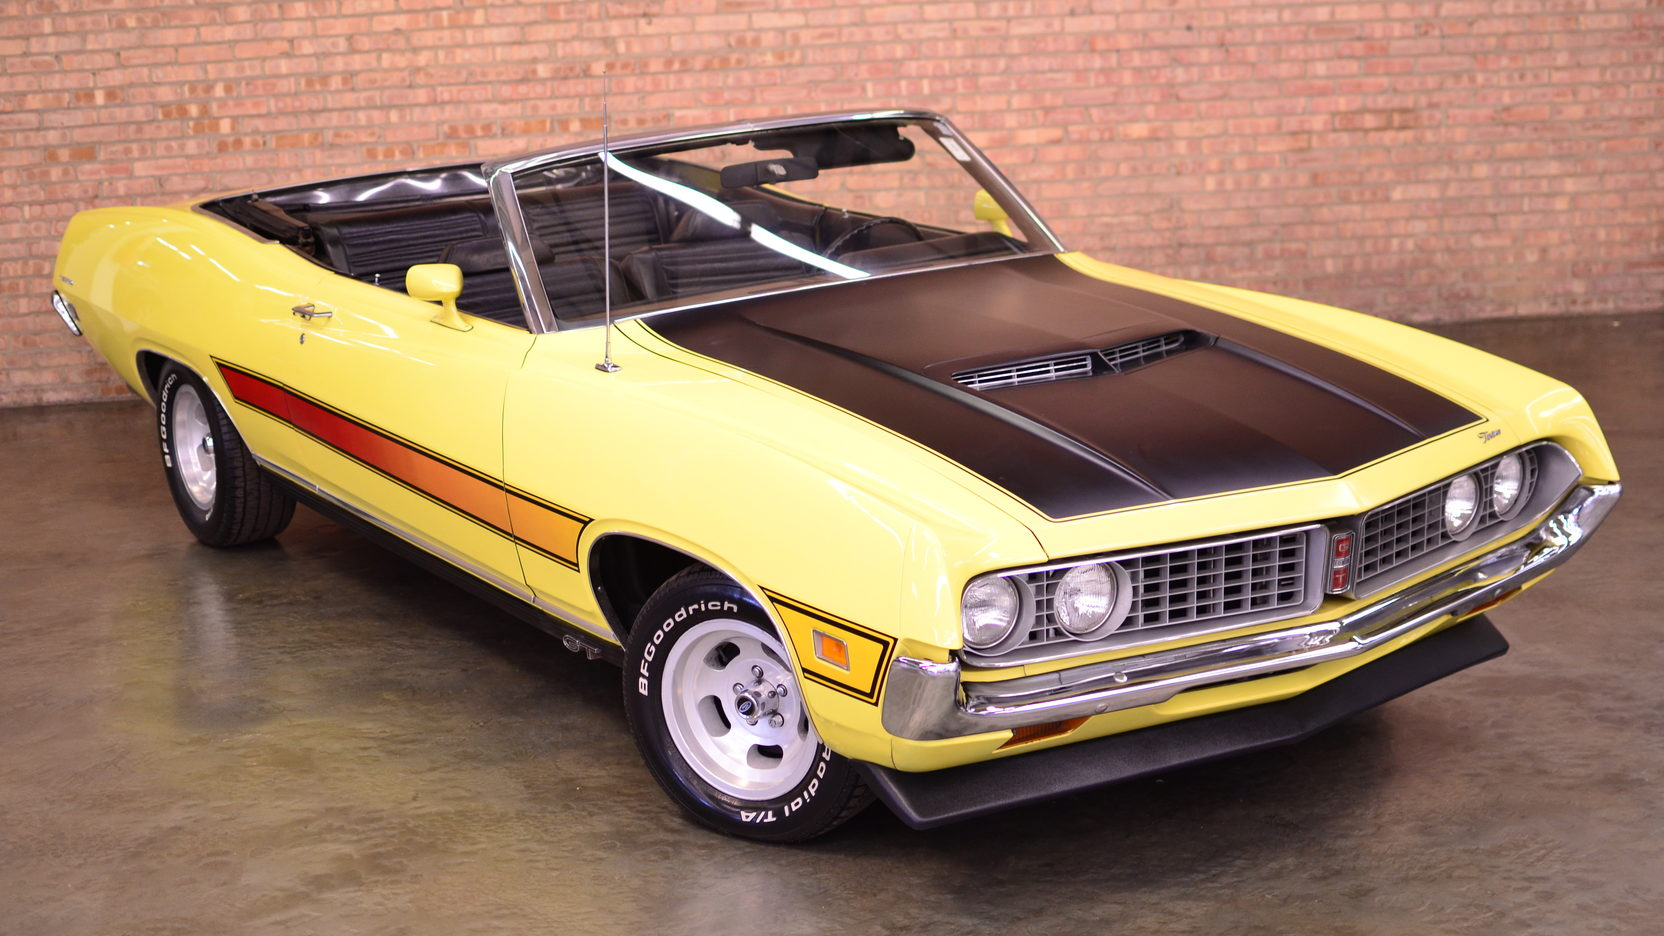 1971 Ford Torino GT front 3/4